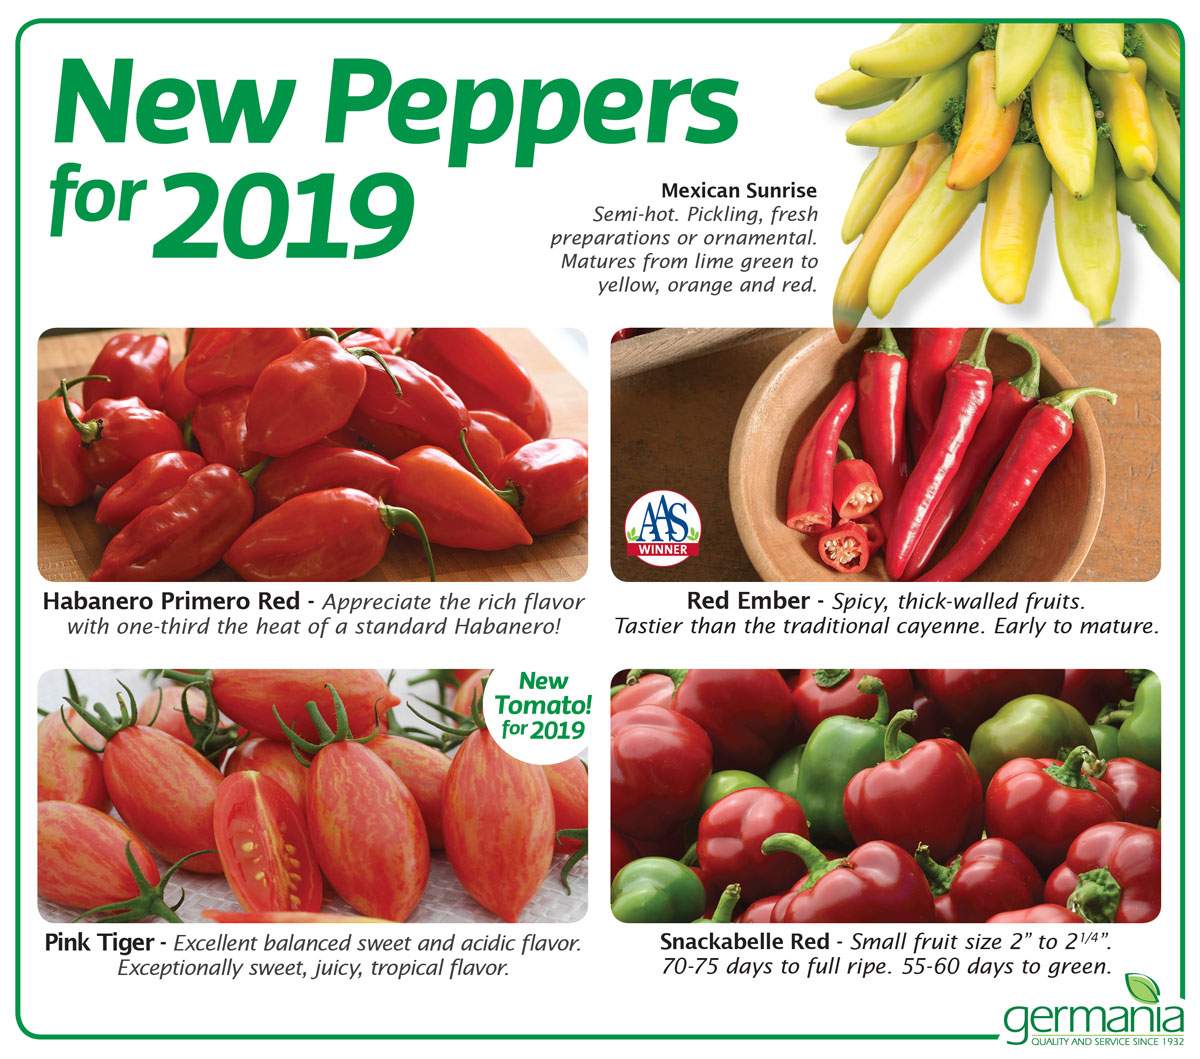 peppers-new-for-2019-1200